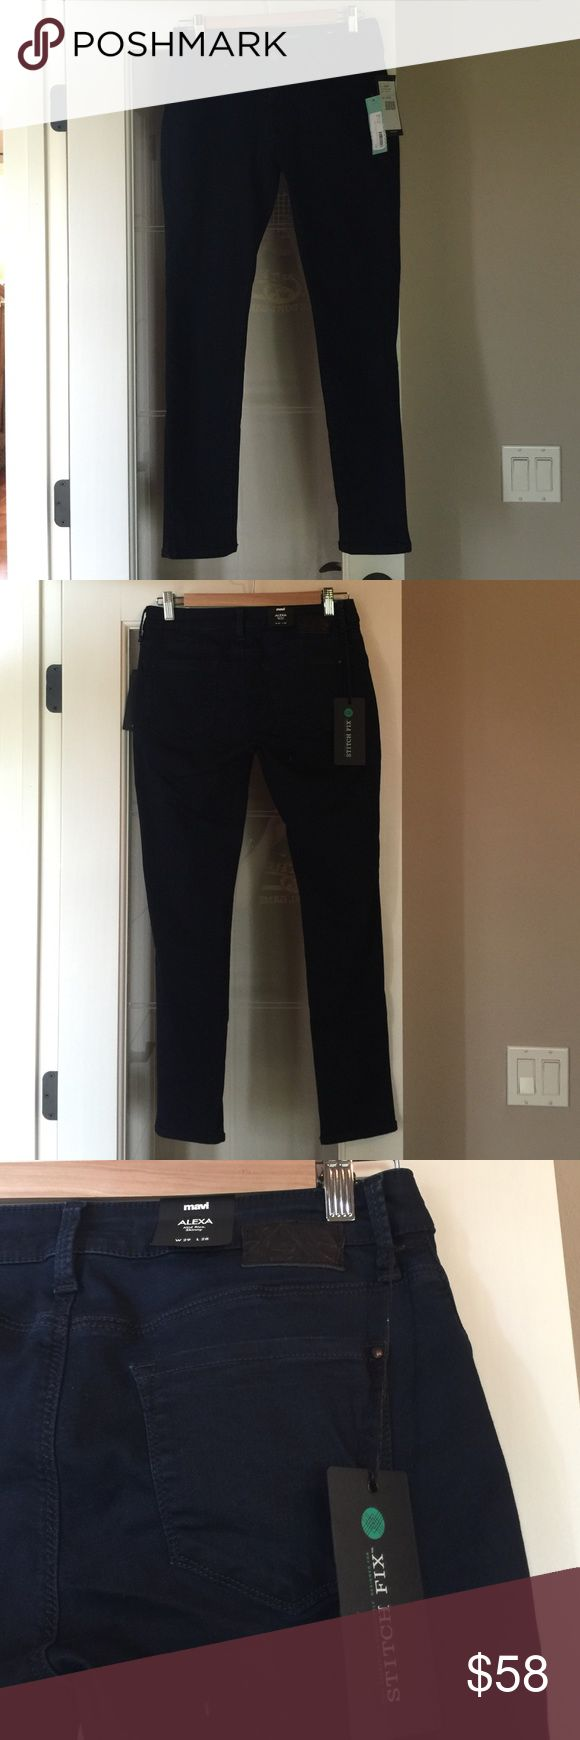 Mavi Stitch Fix NWT brand size 28 skinny jean Mavi Stitch Fix NWT brand size 28 skinny traditional dark blue colored jean.  Perfect for summer.  Would look great with a pair of flats! Comes from a smoke free and pet free home. Mavi Jeans Skinny